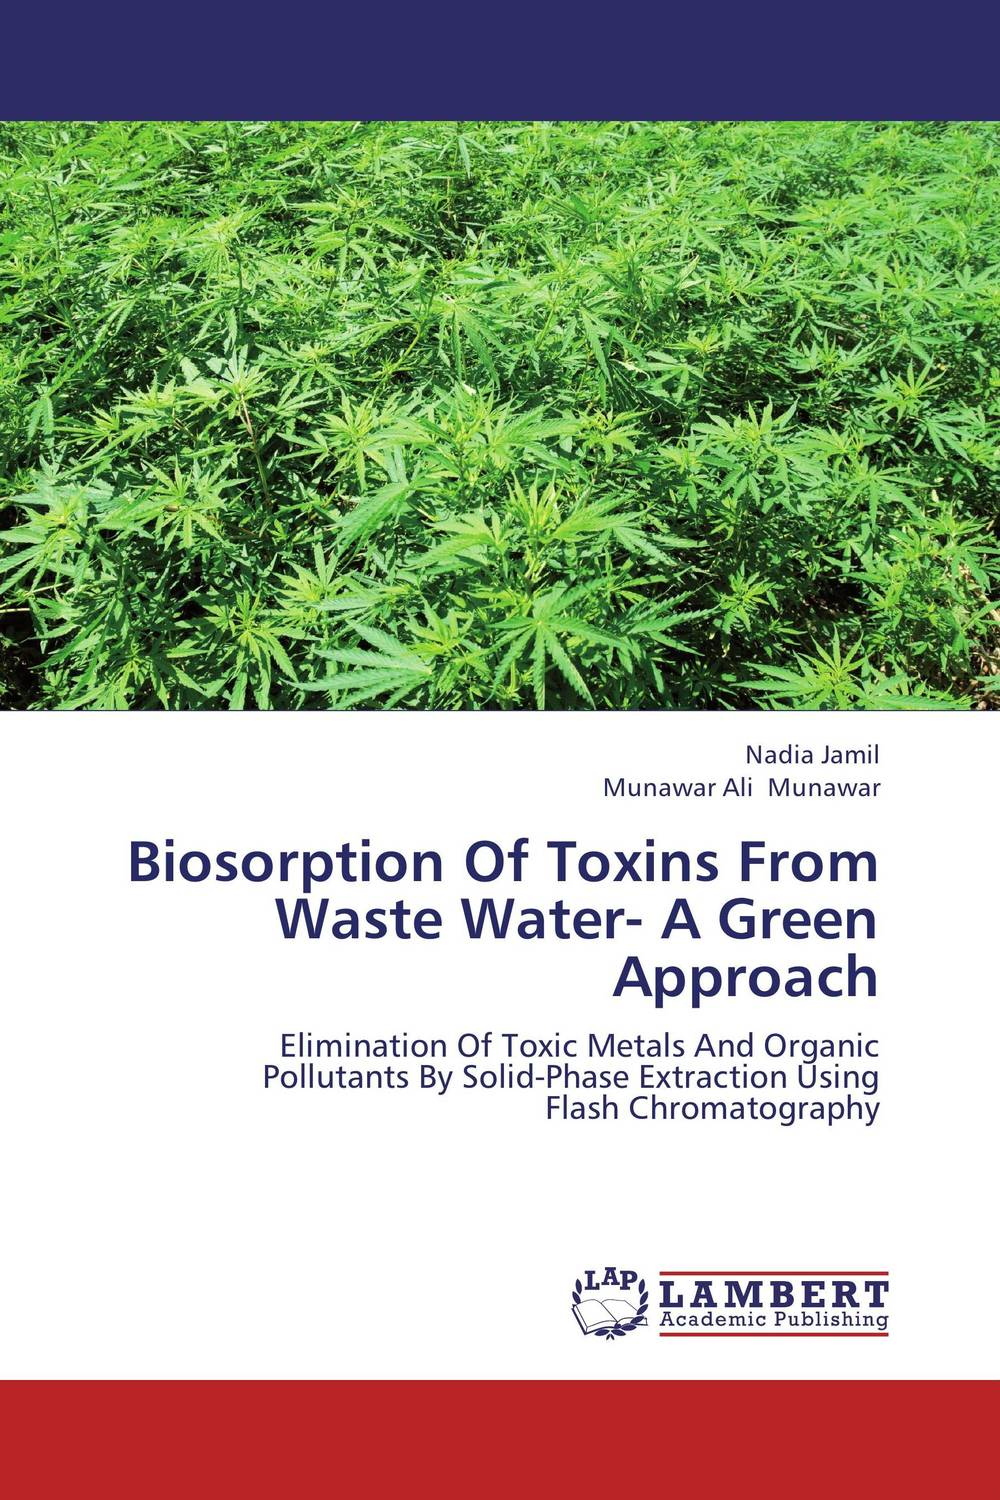 Biosorption Of Toxins From Waste Water- A Green Approach an introduction to environmental pollution